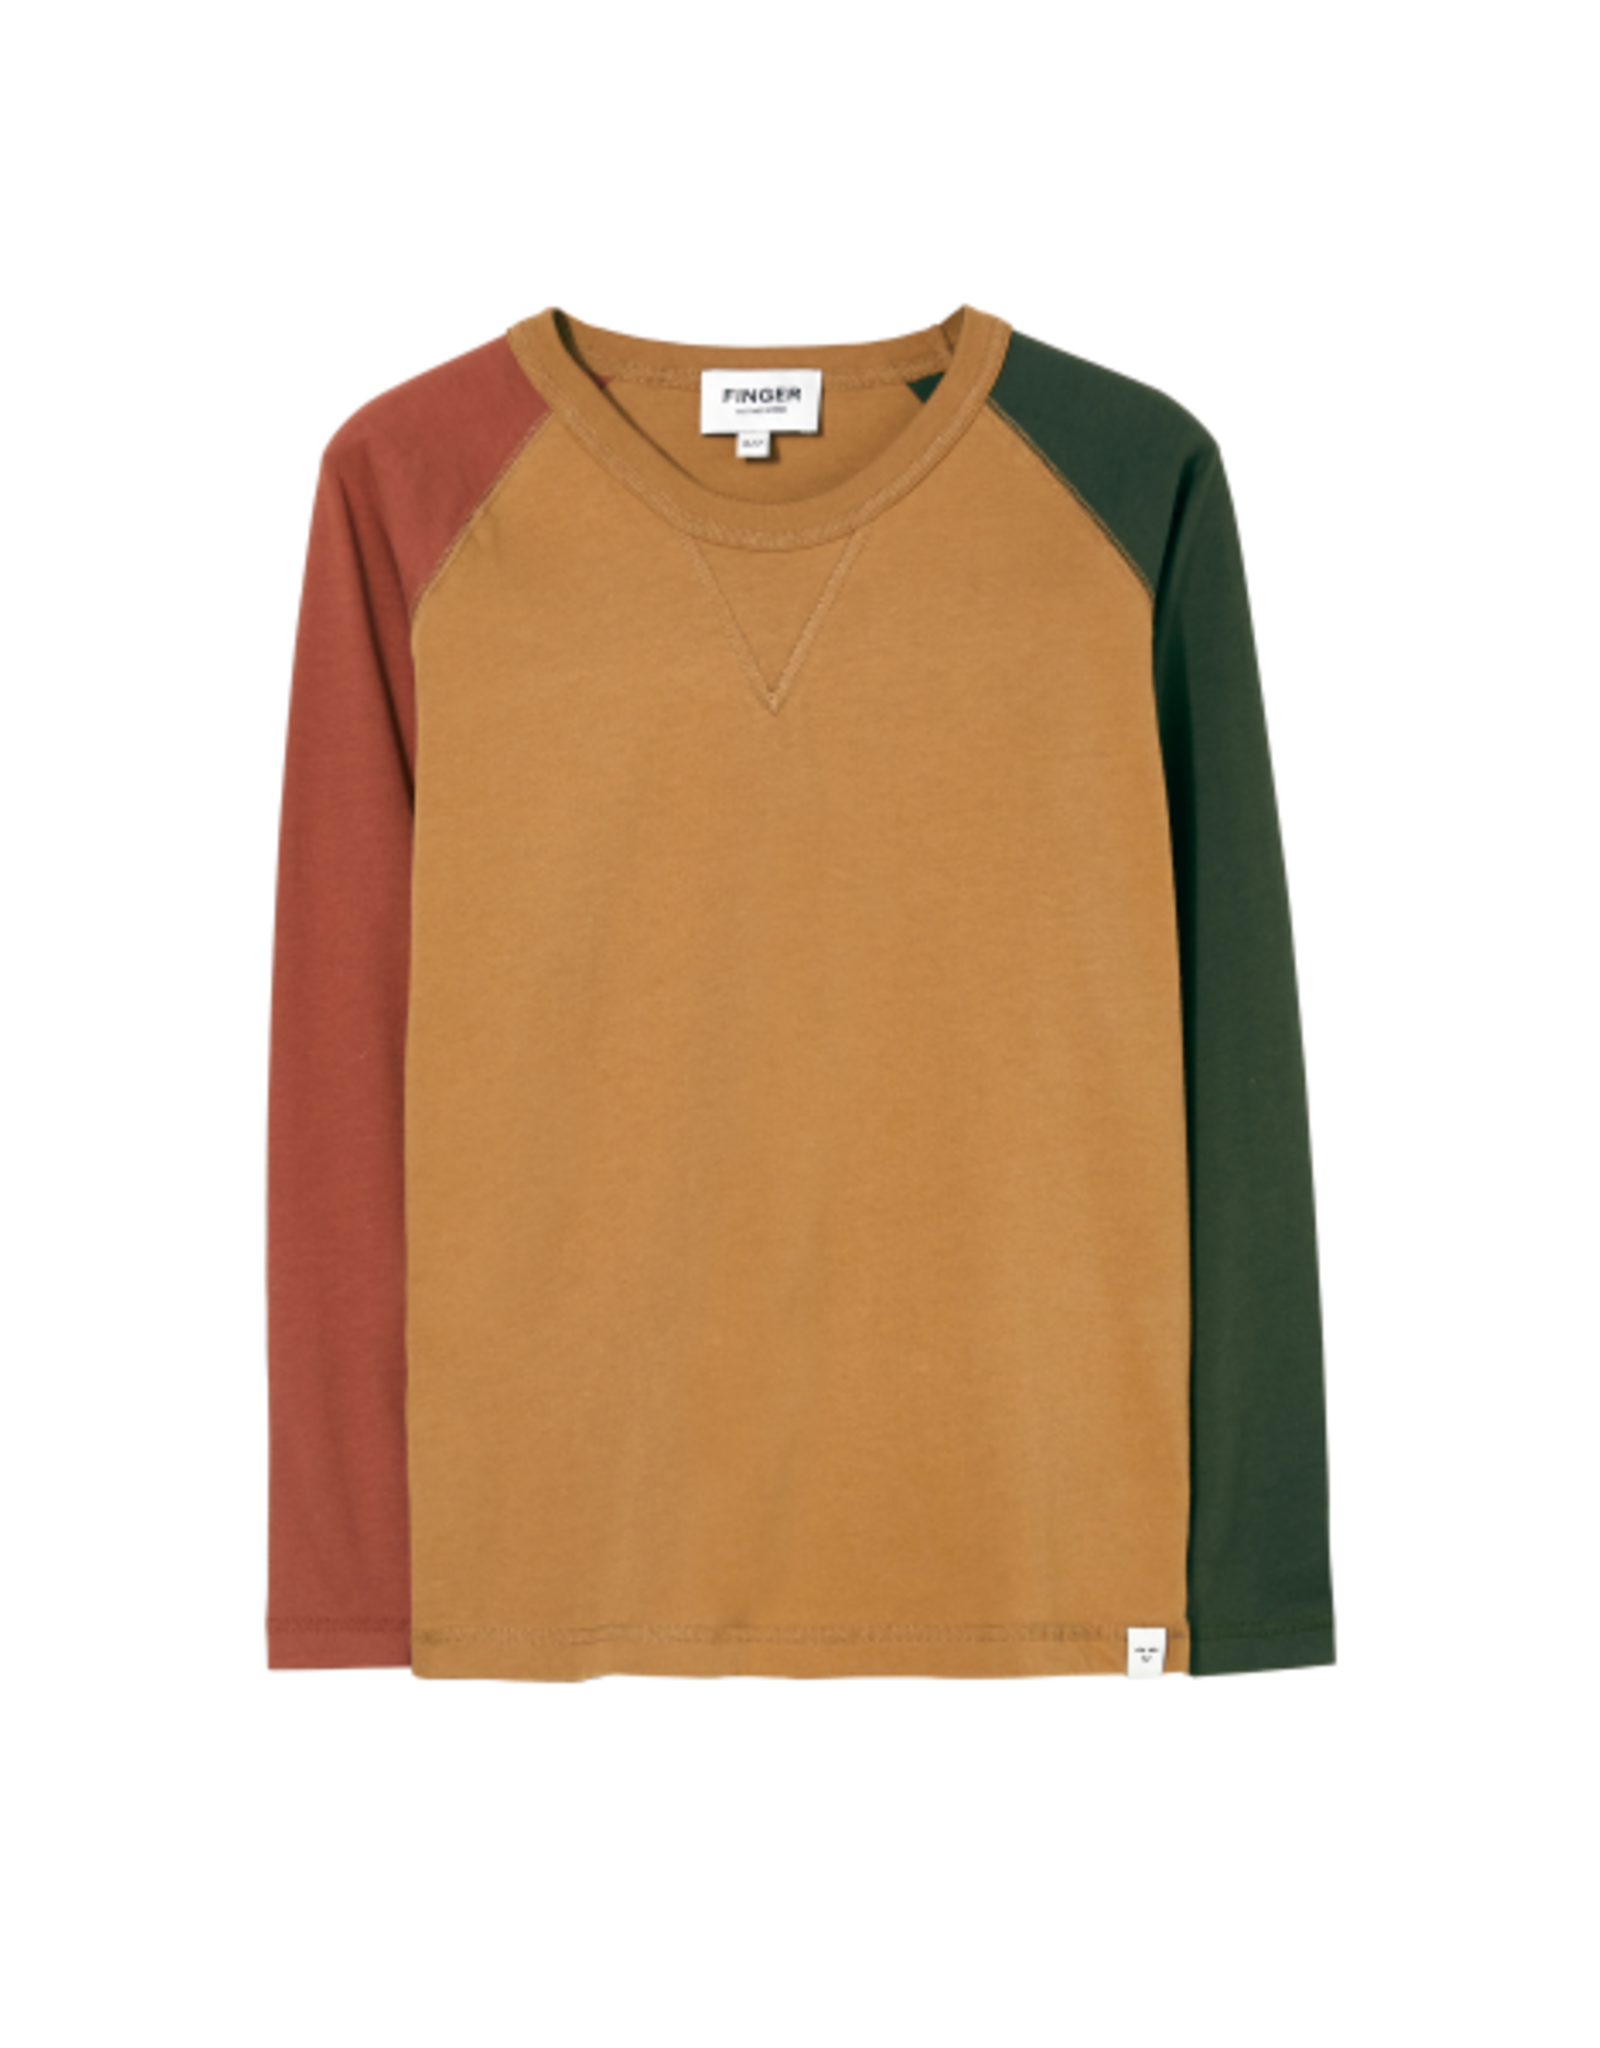 Finger in the Nose Finger in the Nose FW21 Neal Tobacco colourblock shirt